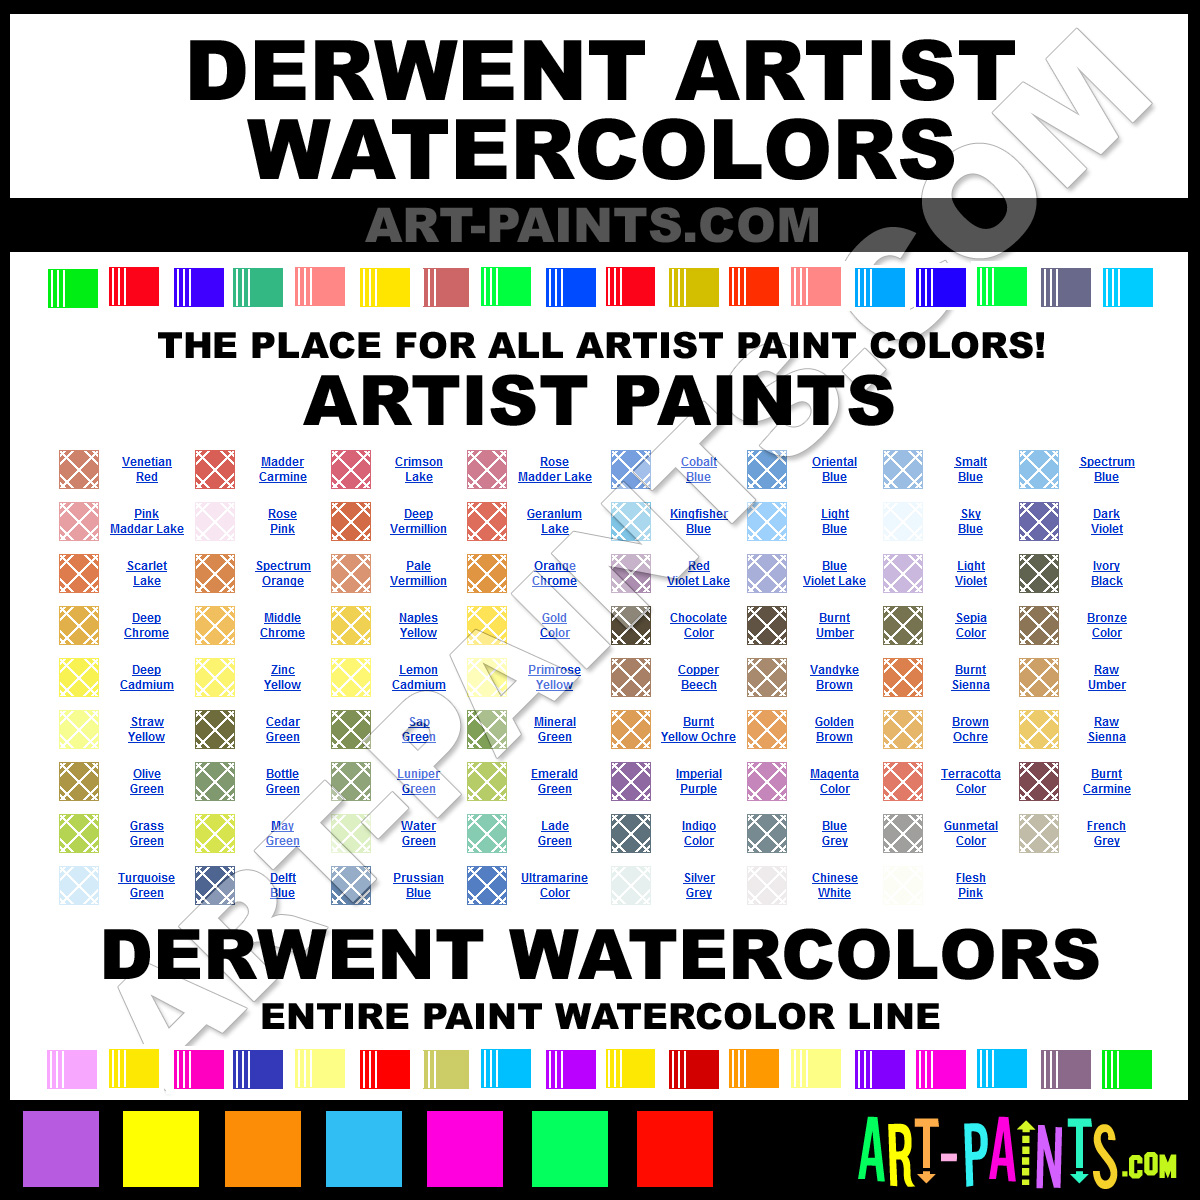 derwent dating For generations, artists have chosen and trusted the derwent® brand for art  materials around the world with a proud history dating back to 1832, derwent's.